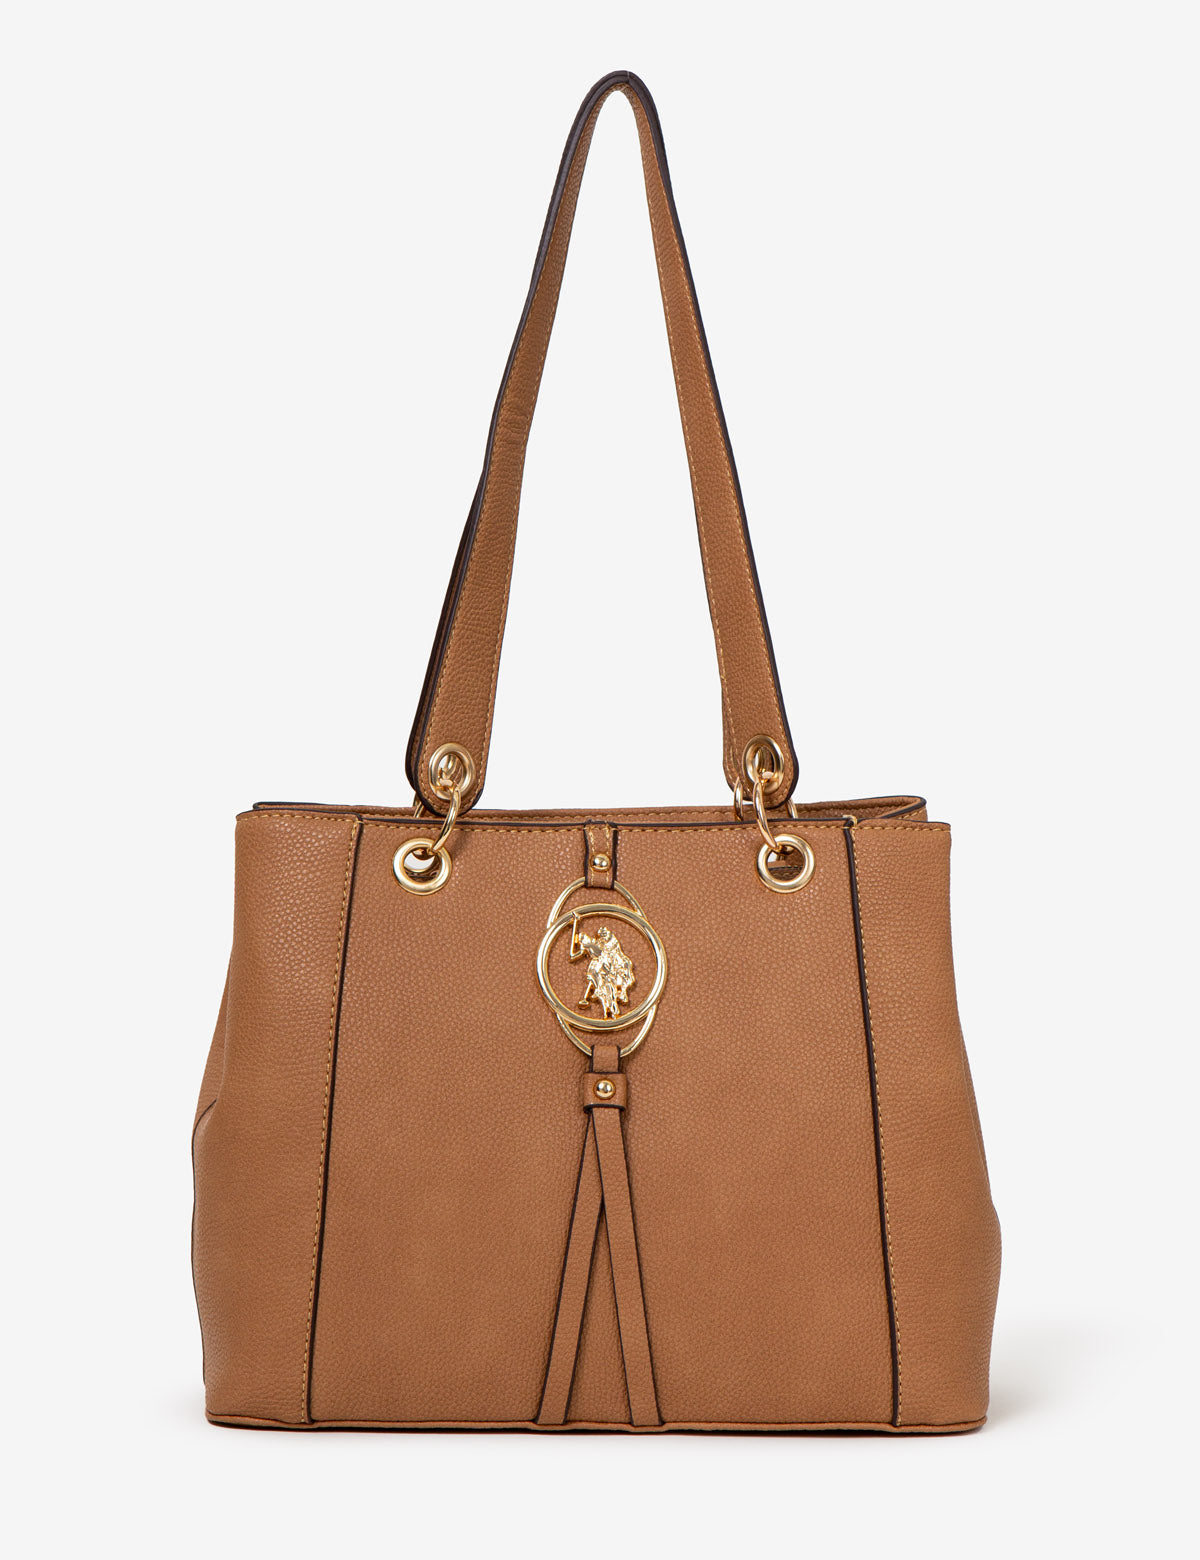 MEDALLION TOTE BAG - U.S. Polo Assn.